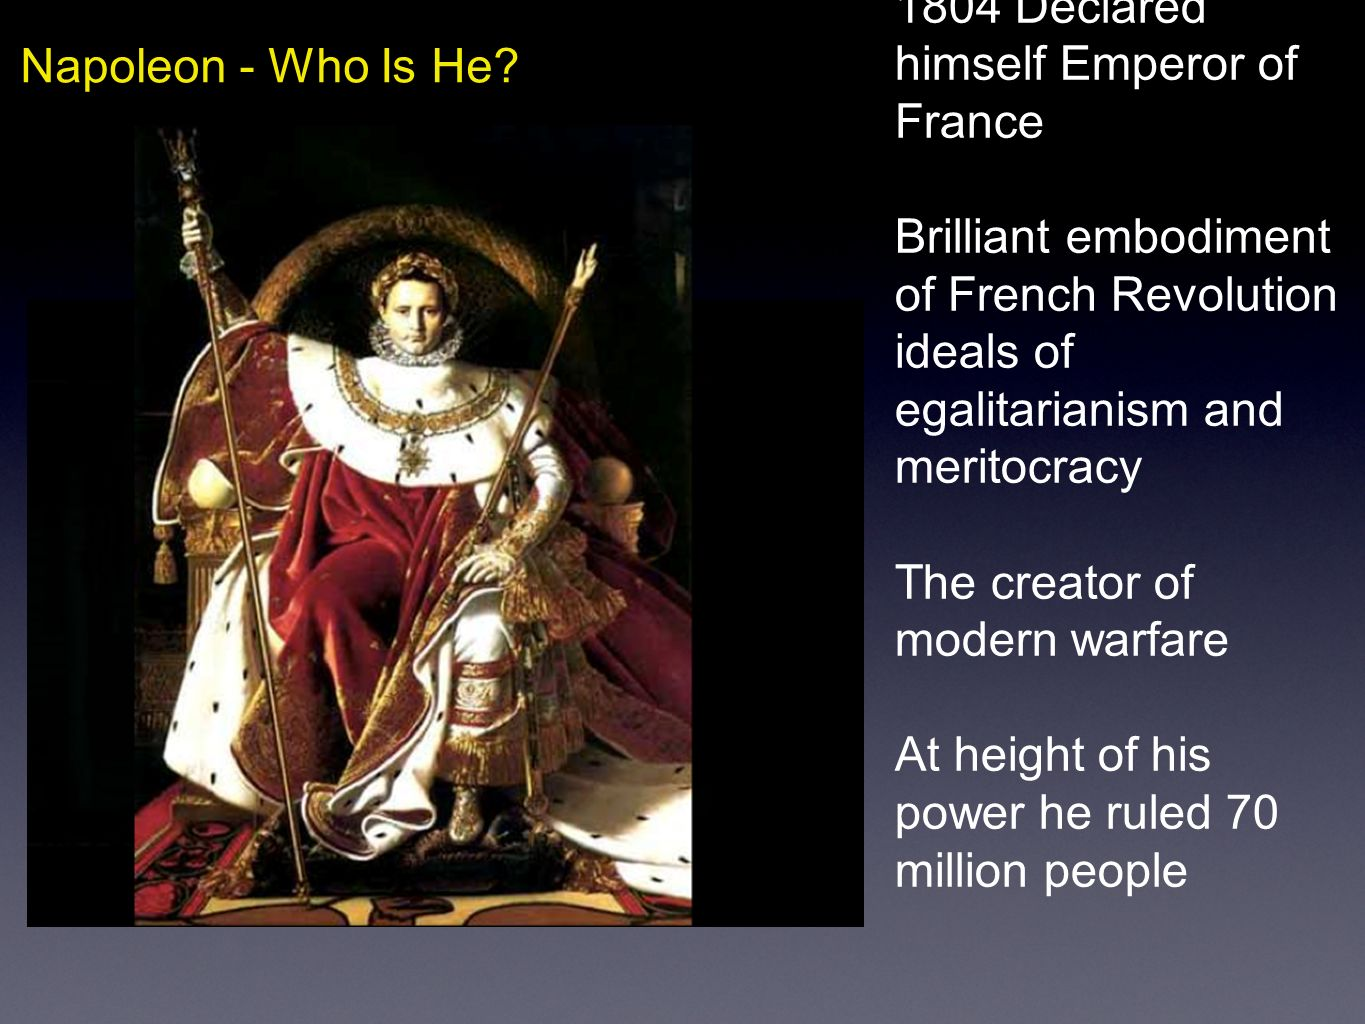 the rule of napoleon bonaparte advanced the french revolution essay Keywords french revolution, napoleon bonaparte  came to france with napoleon's strong rule 2018, from .